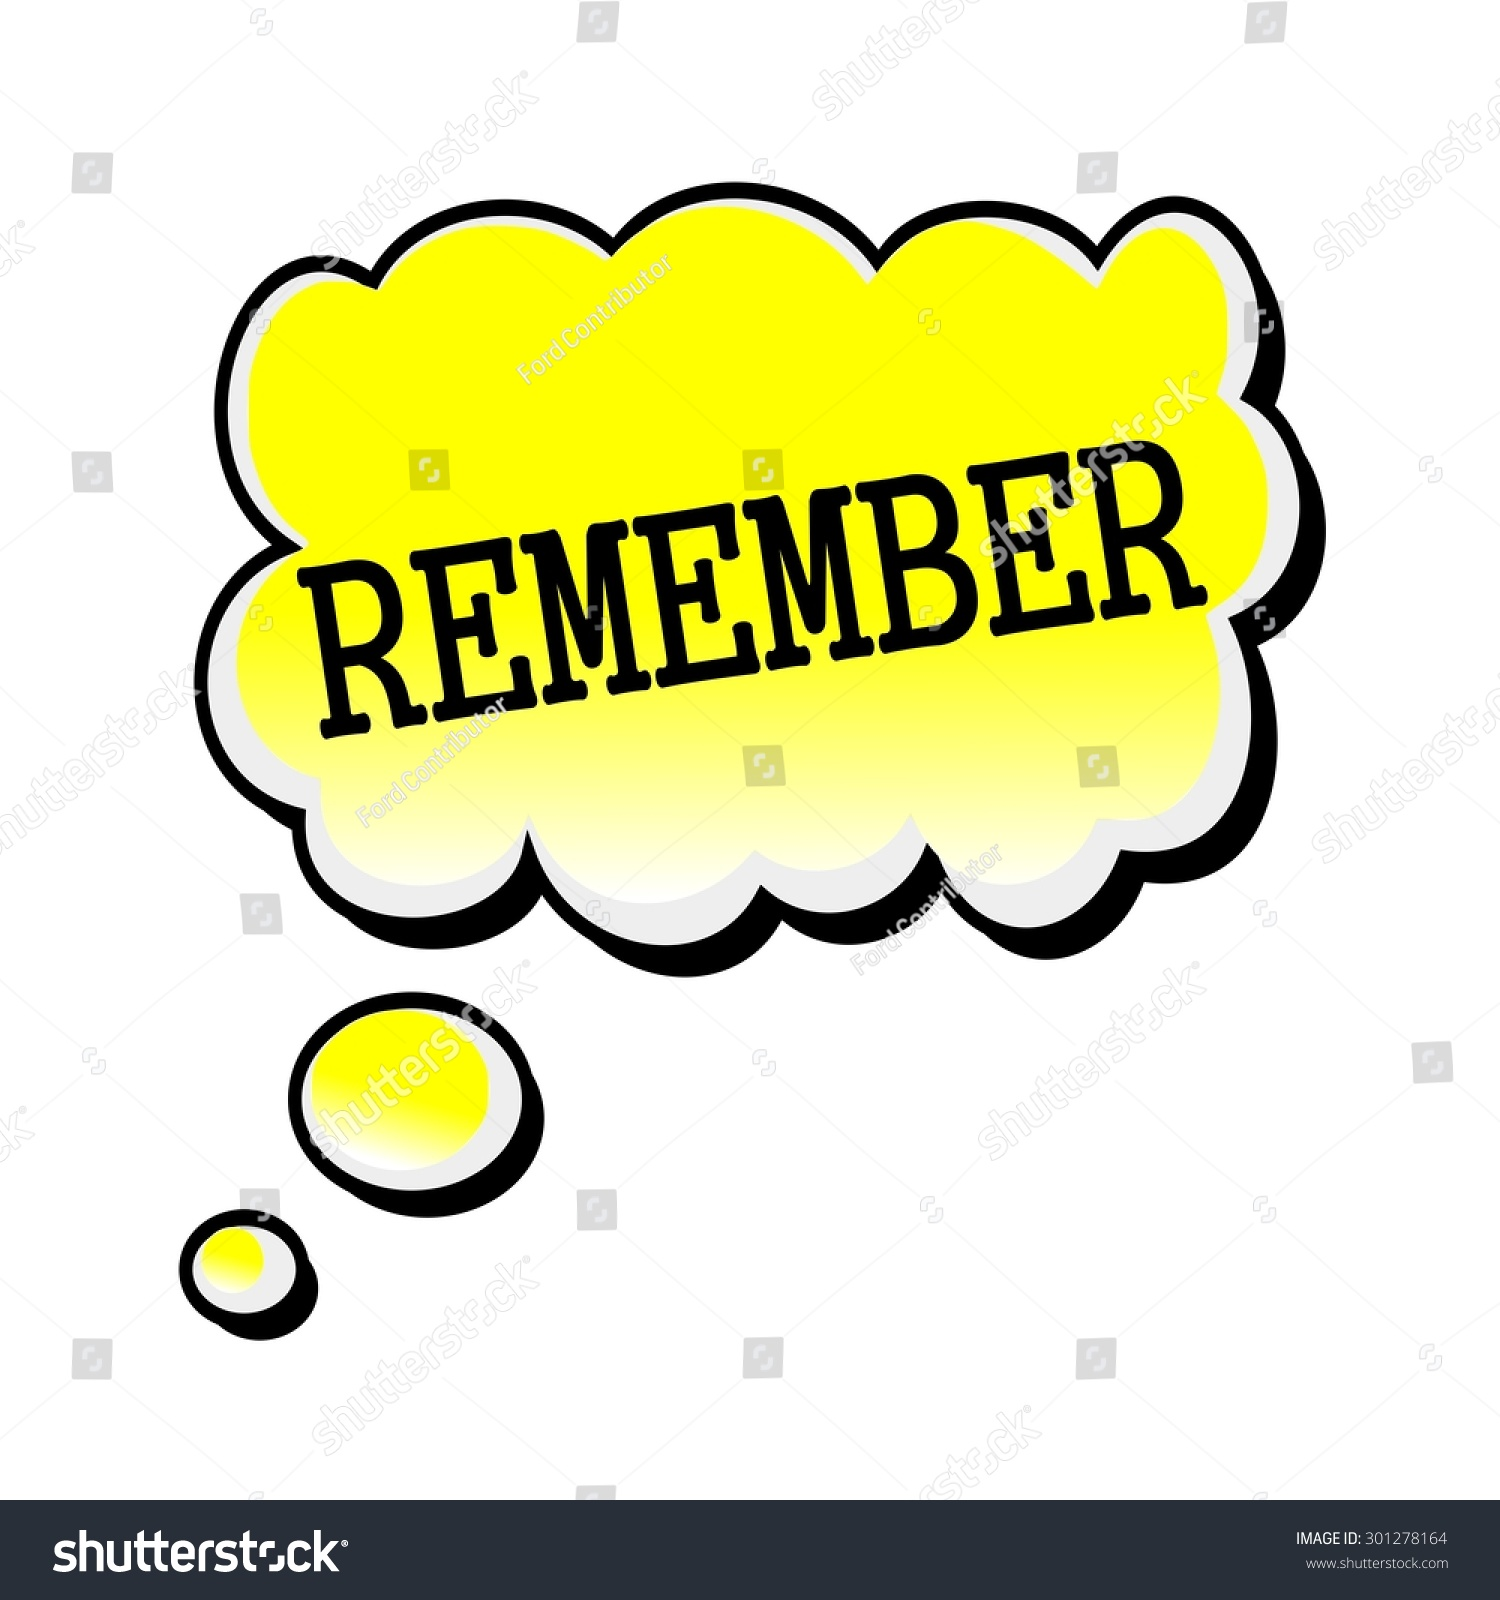 http://image.shutterstock.com/z/stock-photo-remember-black-stamp-text-on-yellow-speech-bubble-301278164.jpg